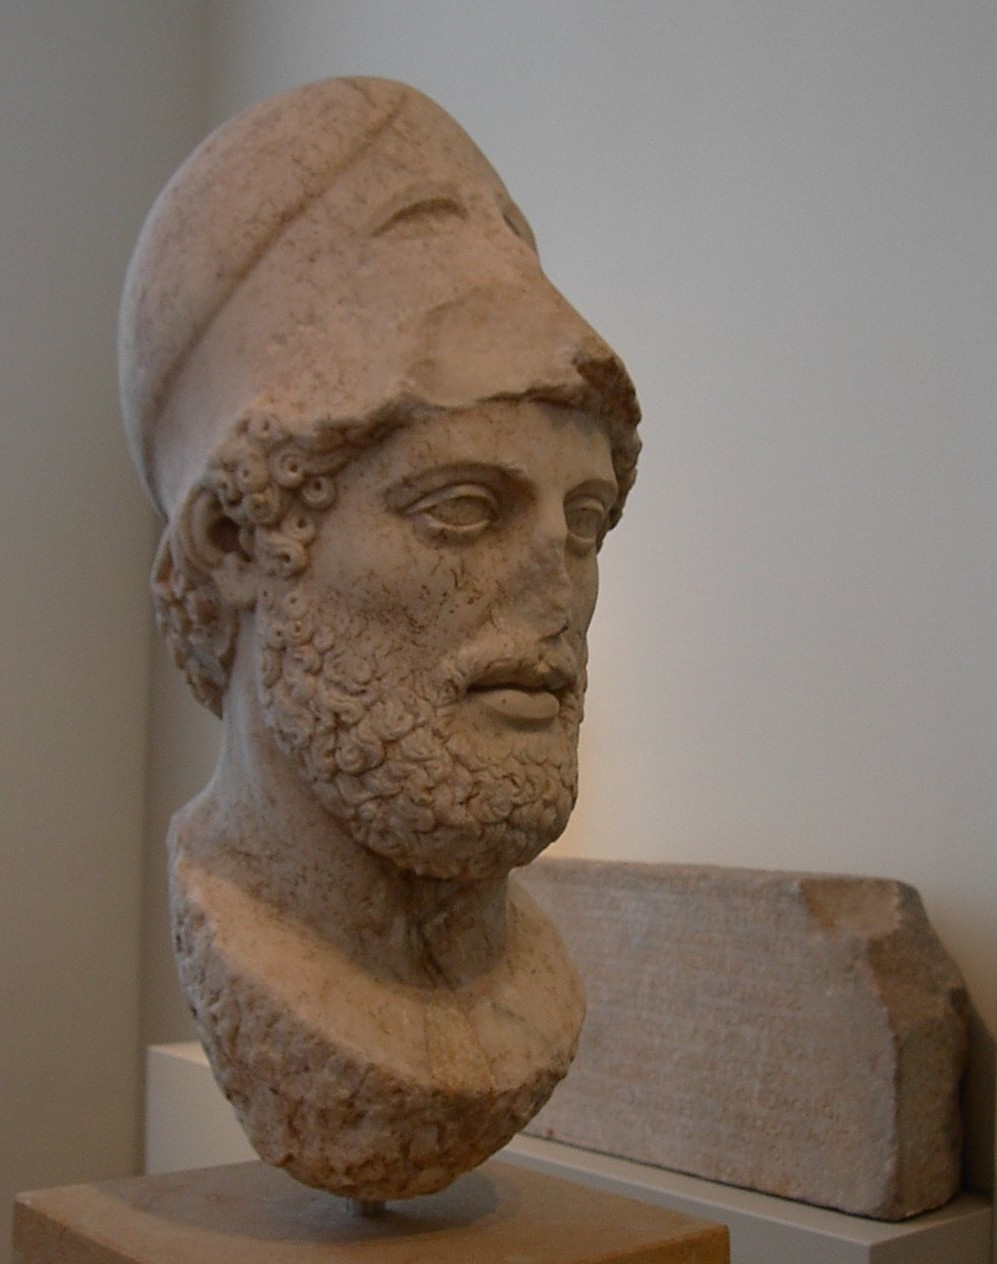 Pericles, Staatliche Museen zu Berlin - foto: Adam Carr, Wikimedia Commons <http://commons.wikimedia.org/wiki/File:Pericles_bust.jpg>